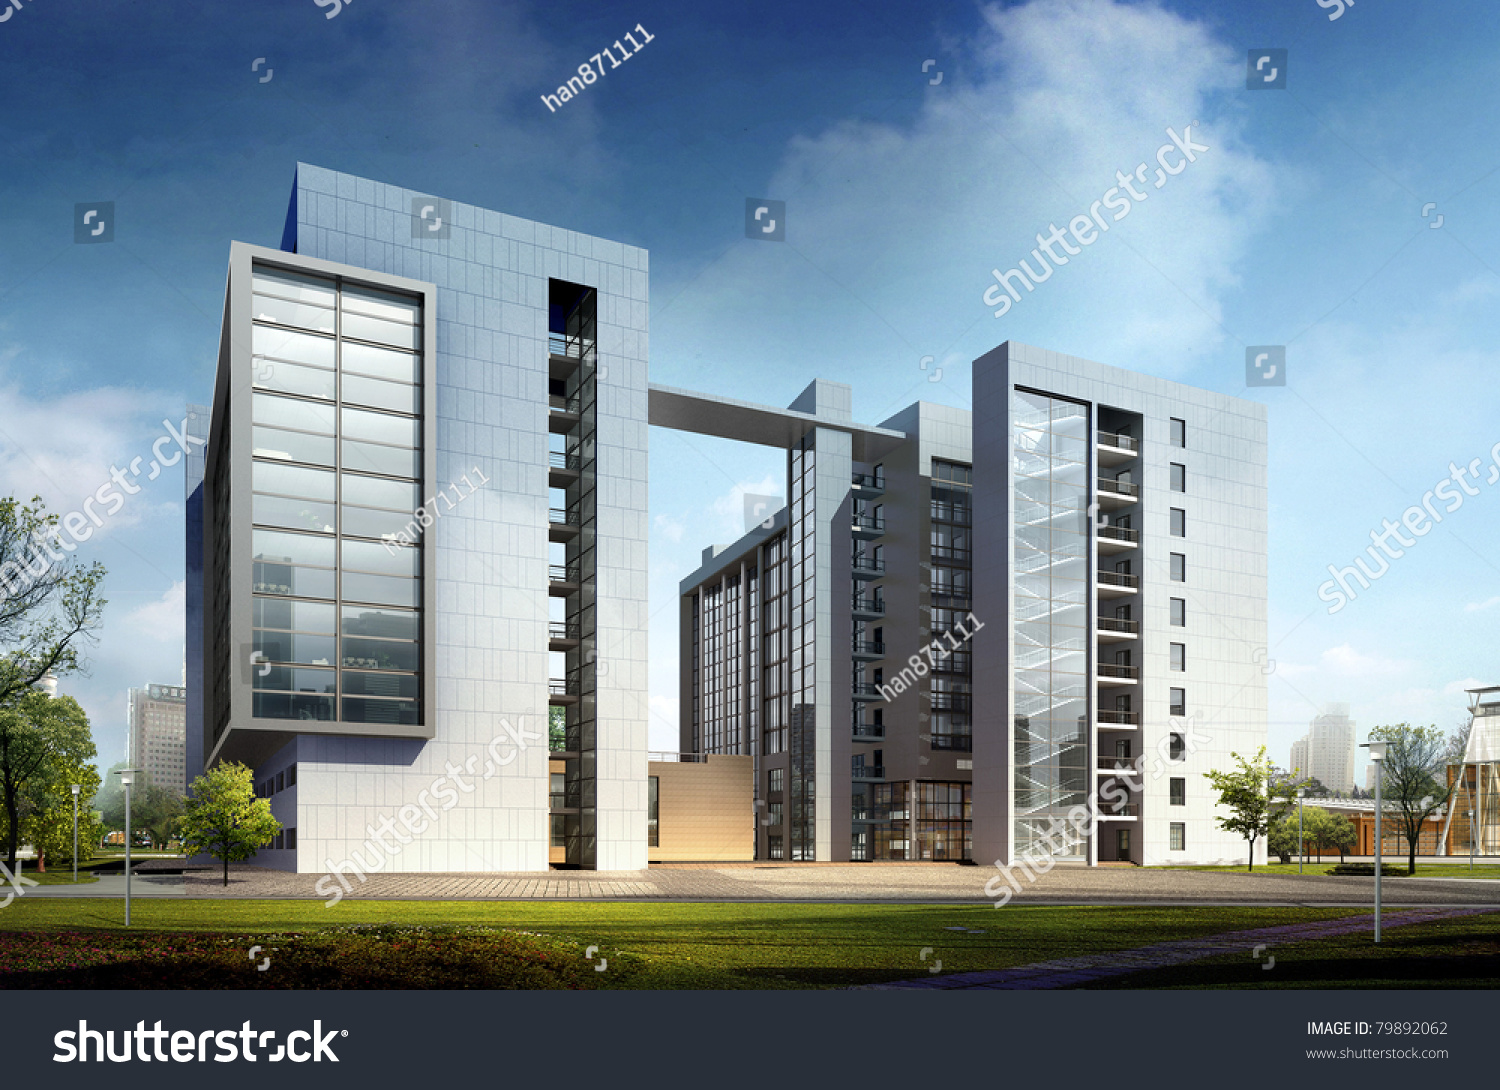 Modern commercial building stock illustration 79892062 for Modern commercial building exterior design